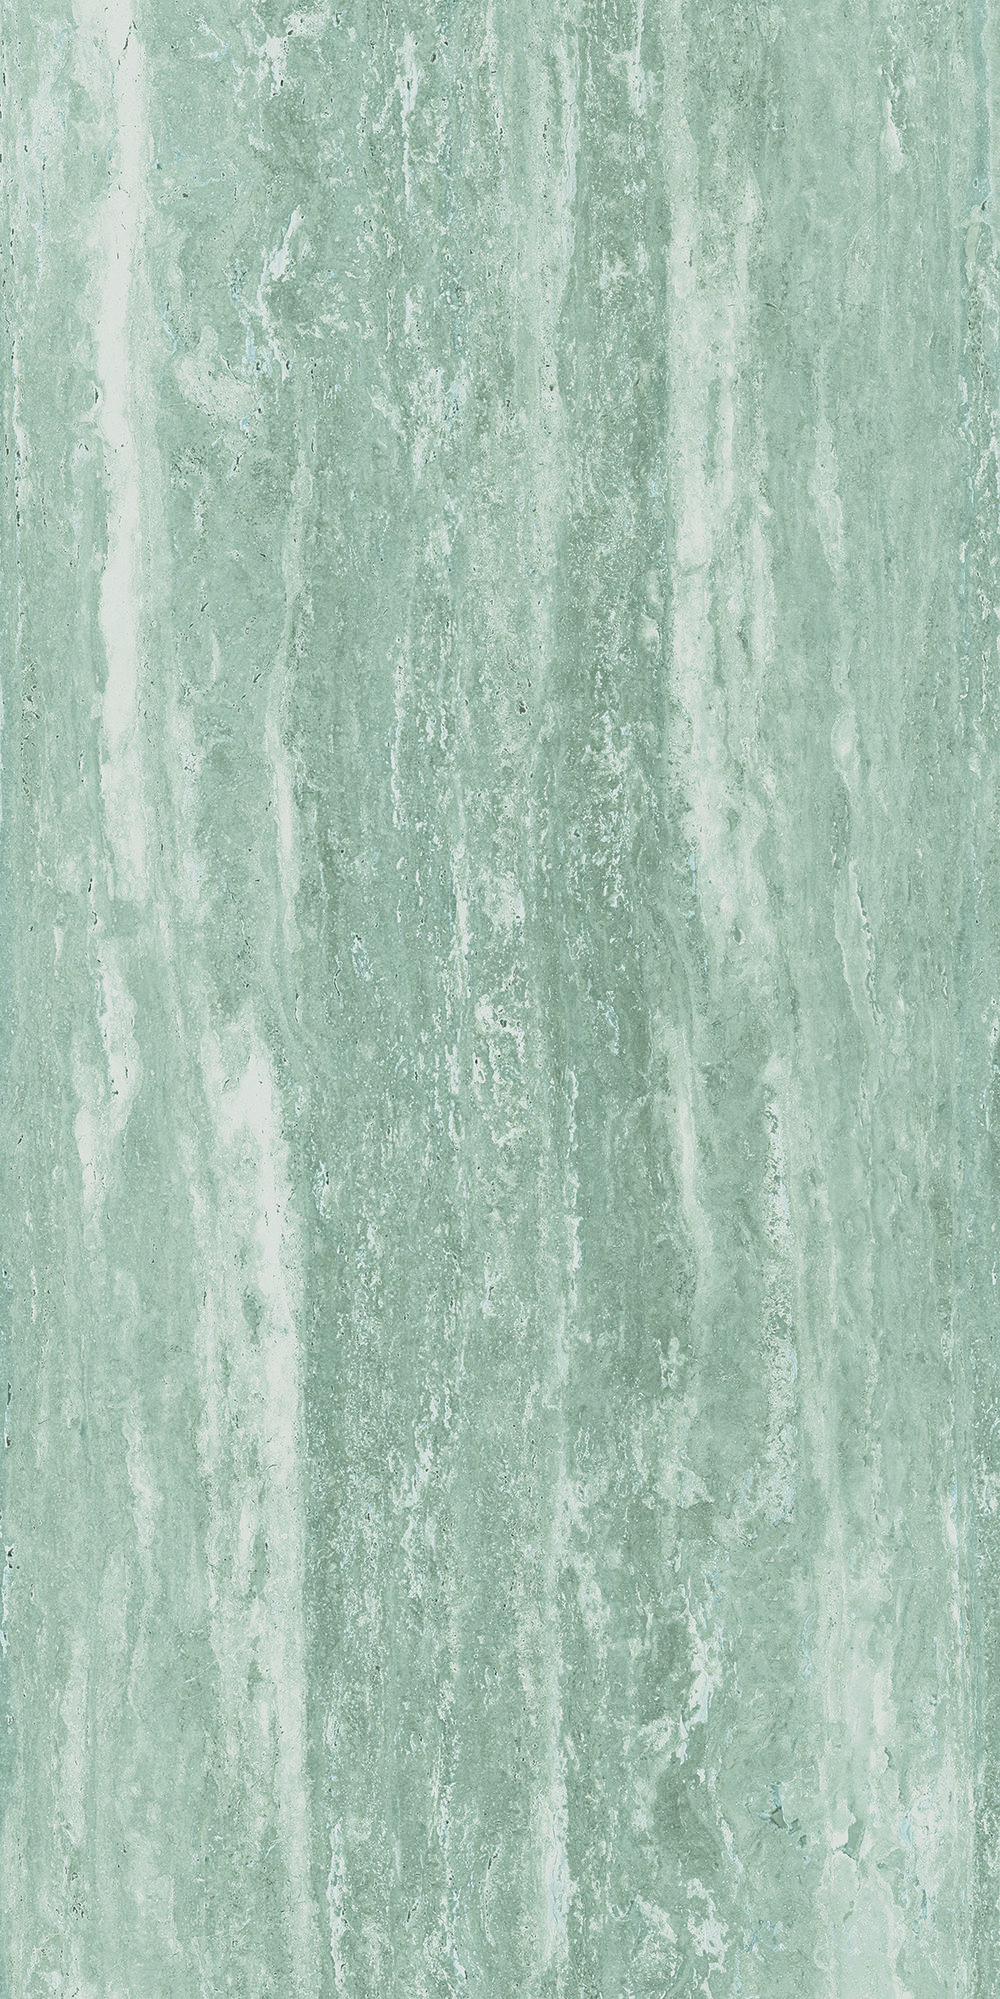 Grigio Travertine - Thin Porcelain